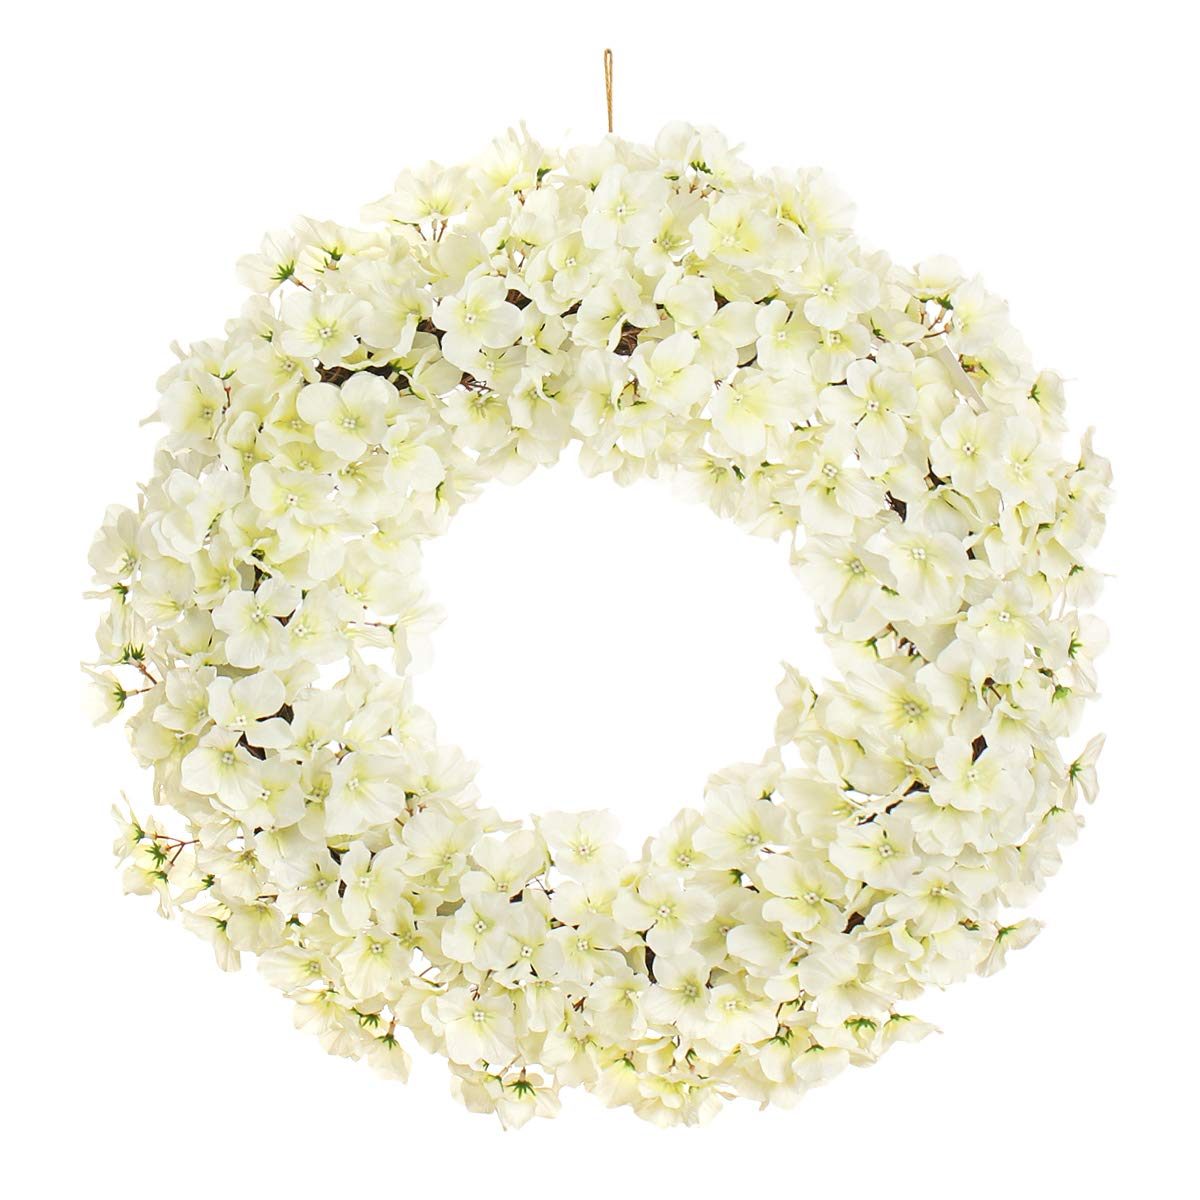 MIXNOVO Hydrangea Front Door Wreath for All Seasons 22 Inch, Stunning Spring Summer Wreath for Front Door Wall Window Party Décor, Beautiful Gift Box Included (White)